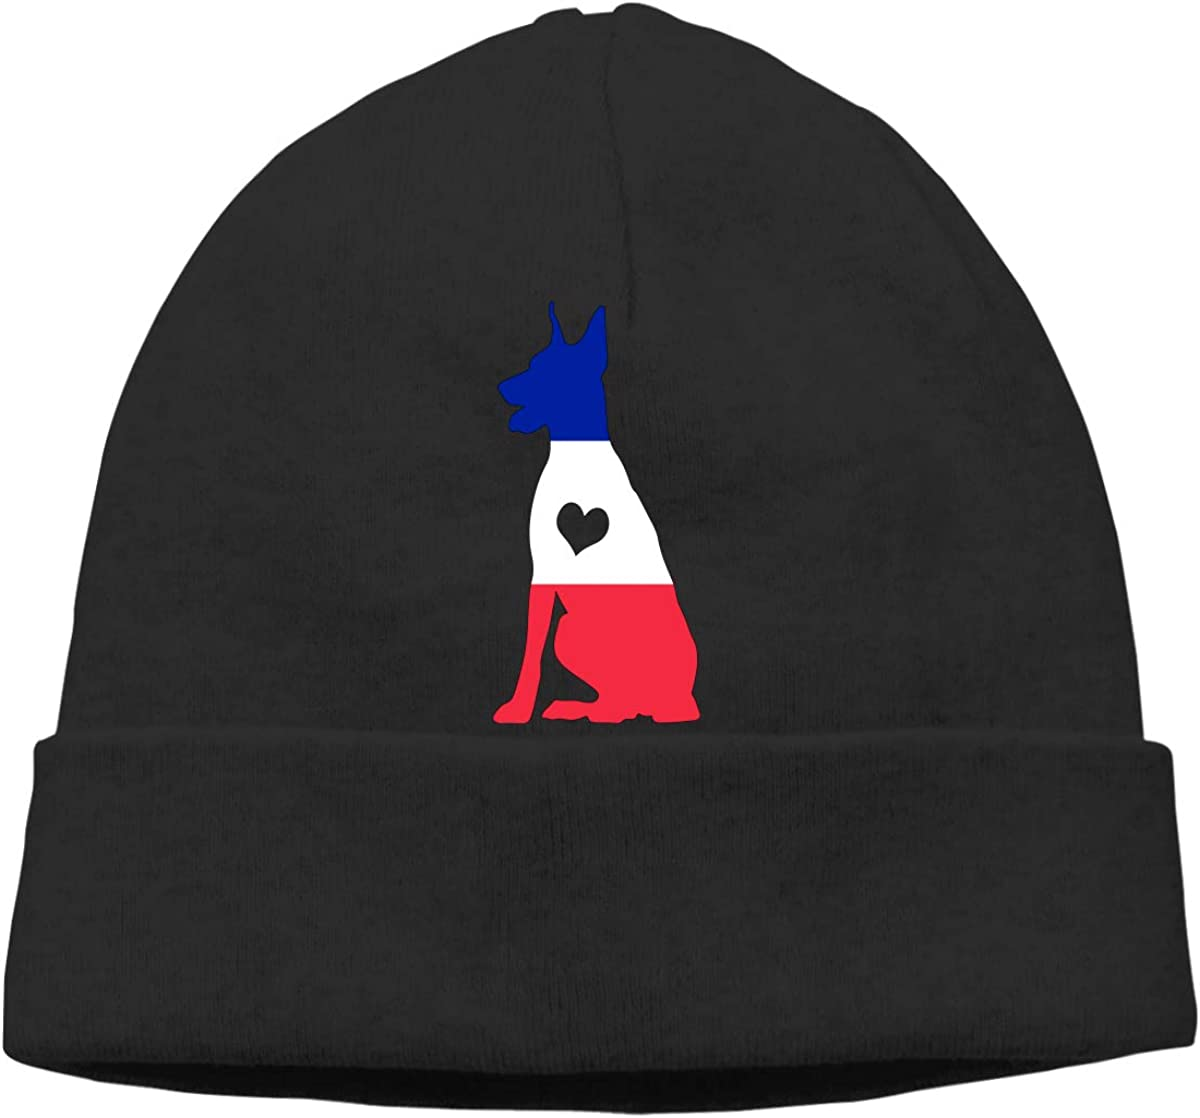 BF5Y3z/&MA France Flag Adore Dobermans Dog Beanie Hat for Men Women,Comfortable Knitted Cap Skiing Cap